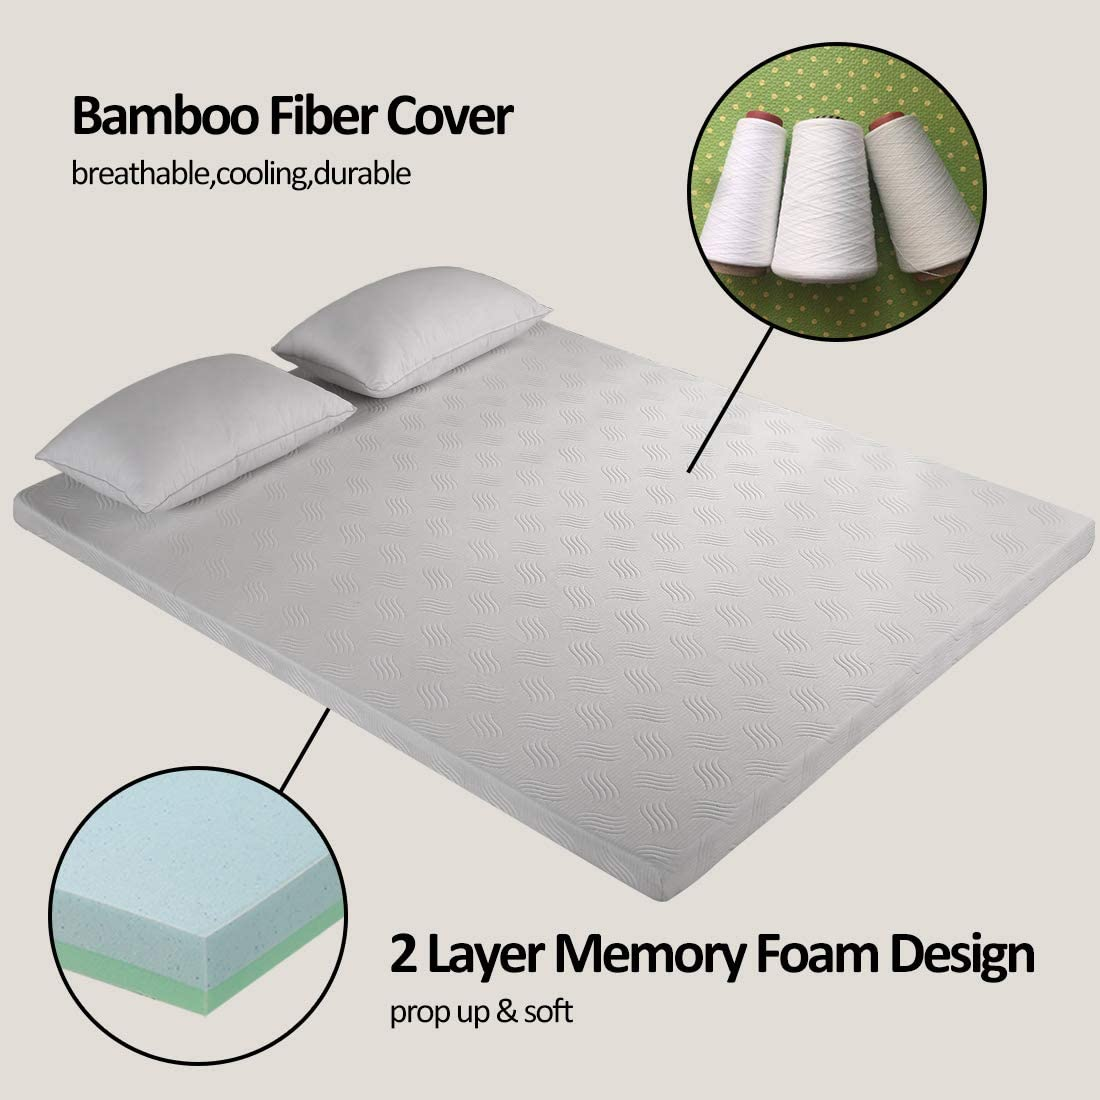 Cooling Relieving Mattress Pad for Bed with Bamboo Fiber Cover FAIRYLAND 3 Inch Memory Foam Mattress Topper Queen Size